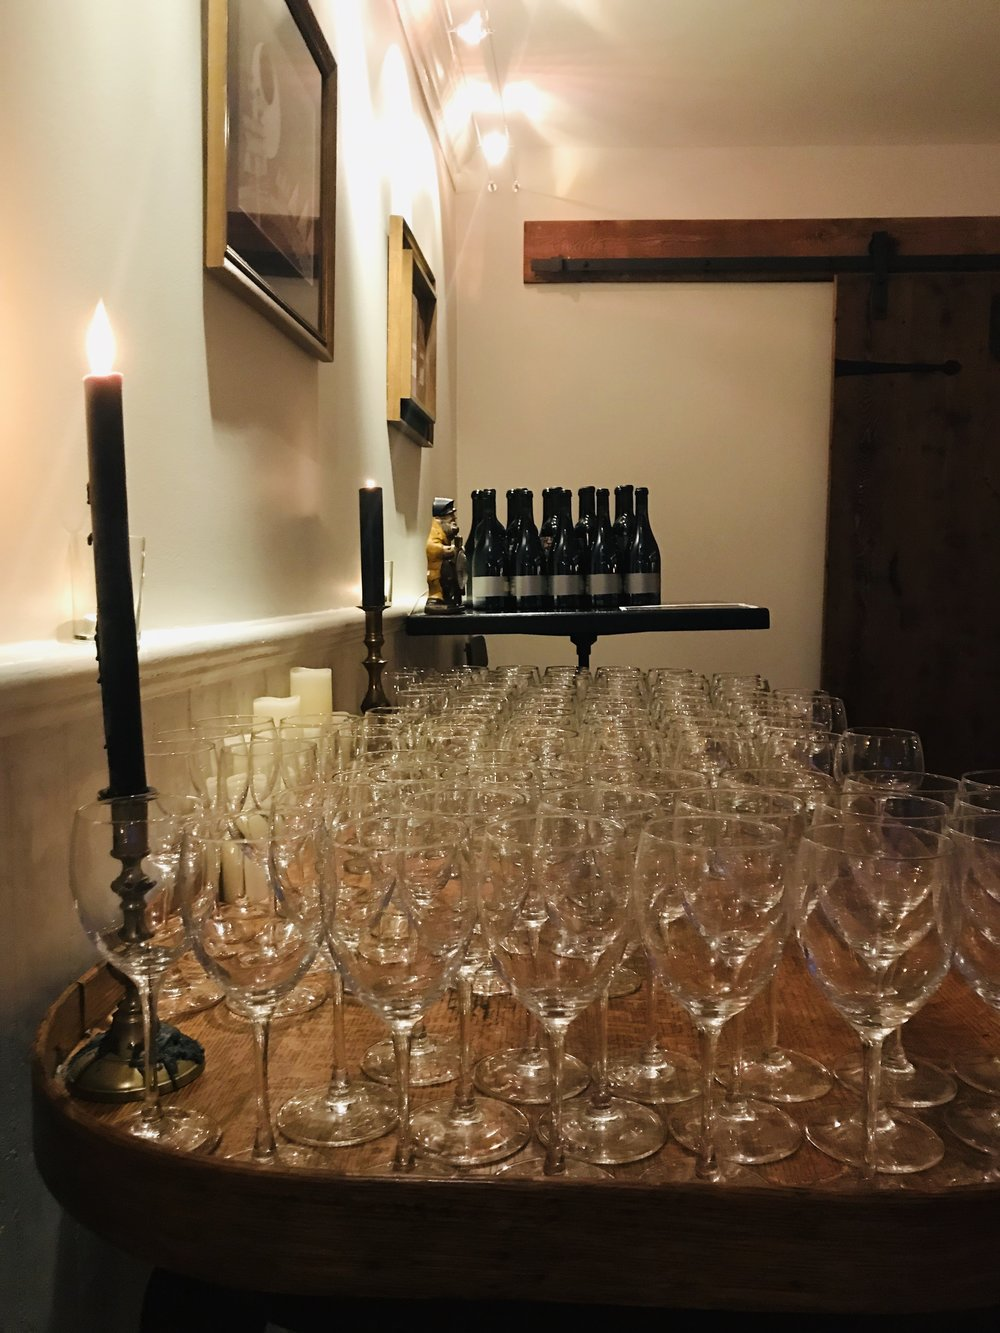 We raise a glass and say a big thanks to Brittany, Molly, Empire Merchants North, our dinner guests, and staff for an incredible evening.